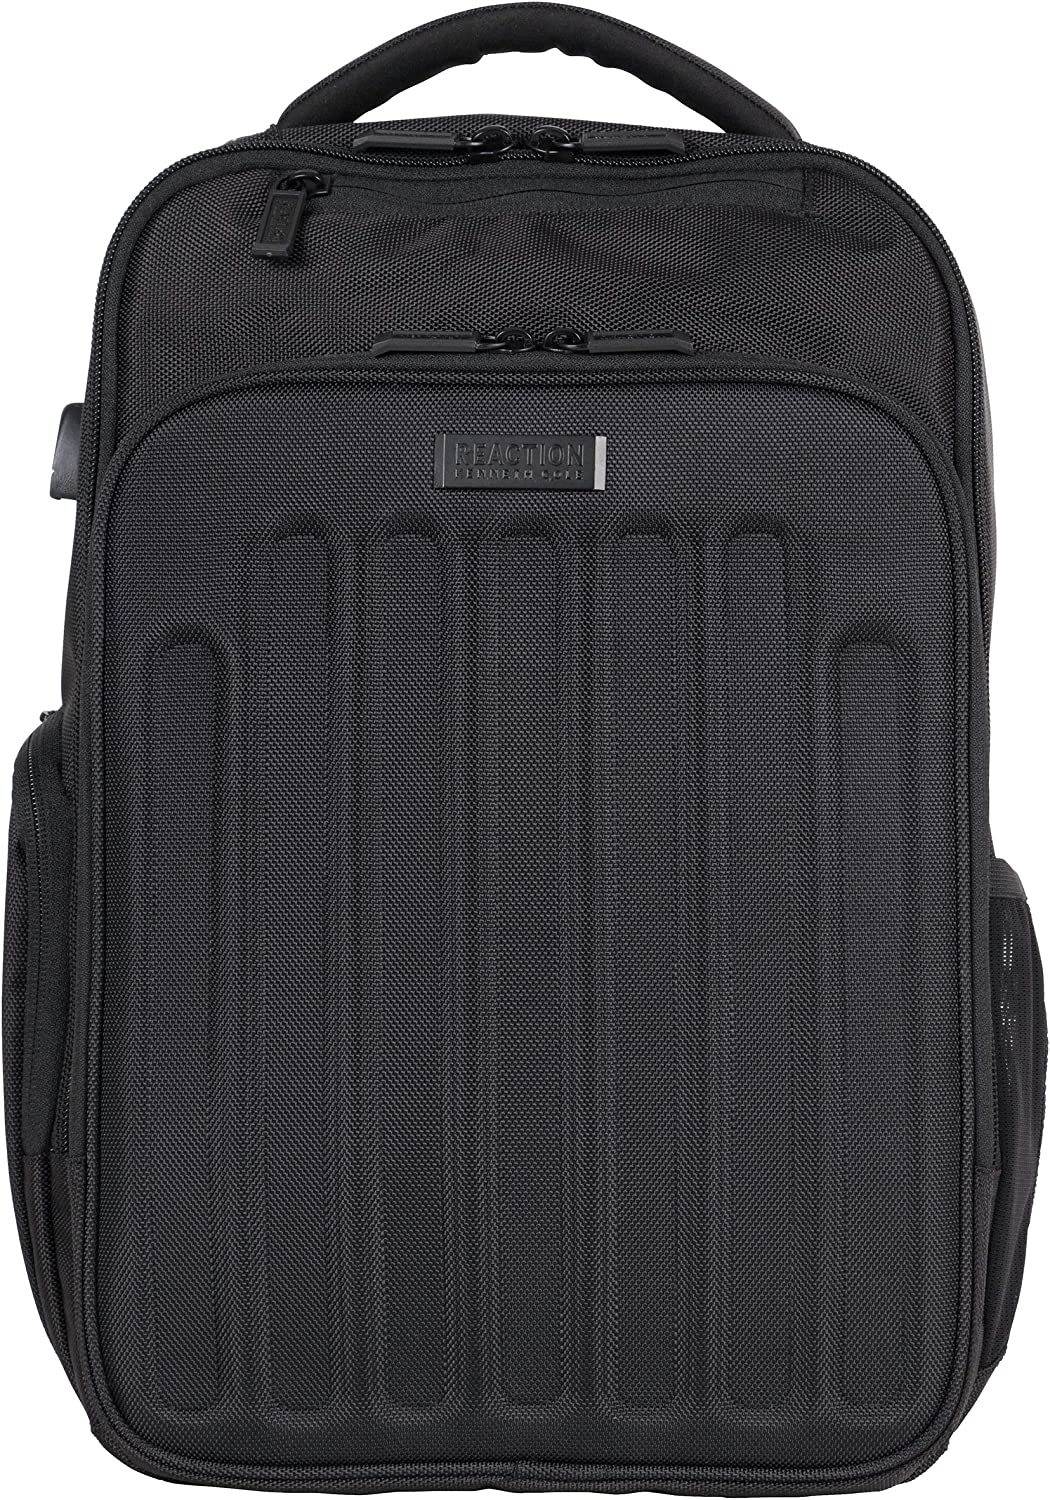 "Kenneth Cole Reaction Brooklyn Commuter Backpack Slim 16"" Laptop & Tablet Anti-Theft RFID Business, School, & Travel Bookbag"